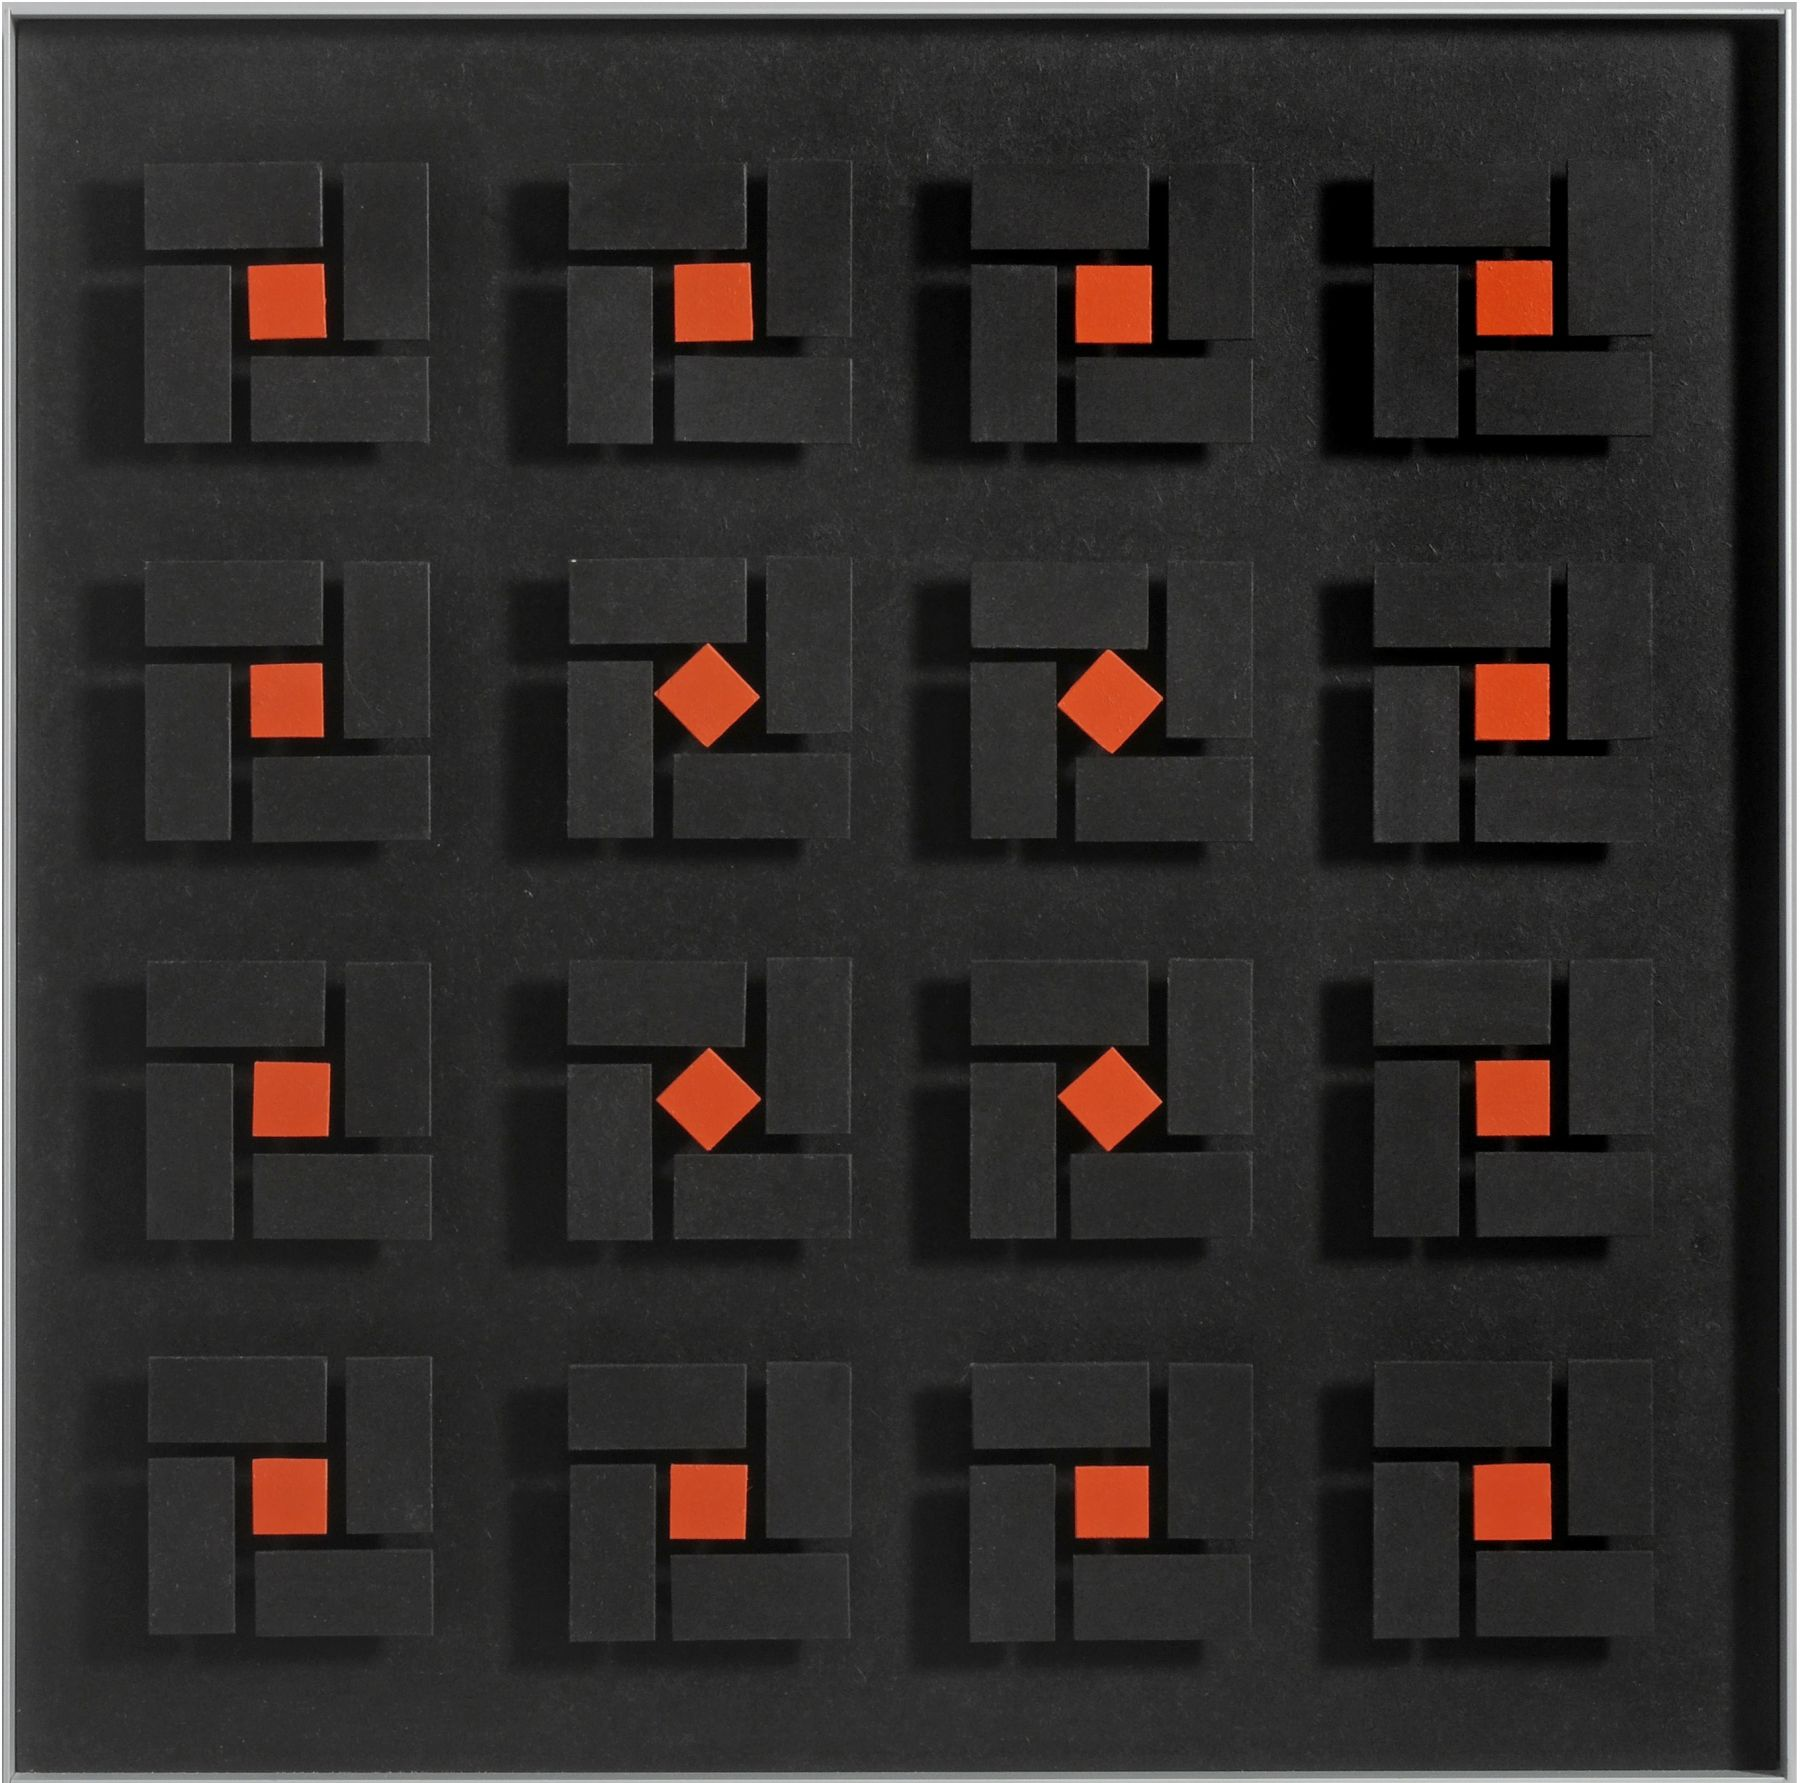 Luis Tomasello, Lumière noire No. 980, 2011, Acrylic on wood, 24 x 24 x 2 1/8 in. (61 x 61 x 5.4 cm.)